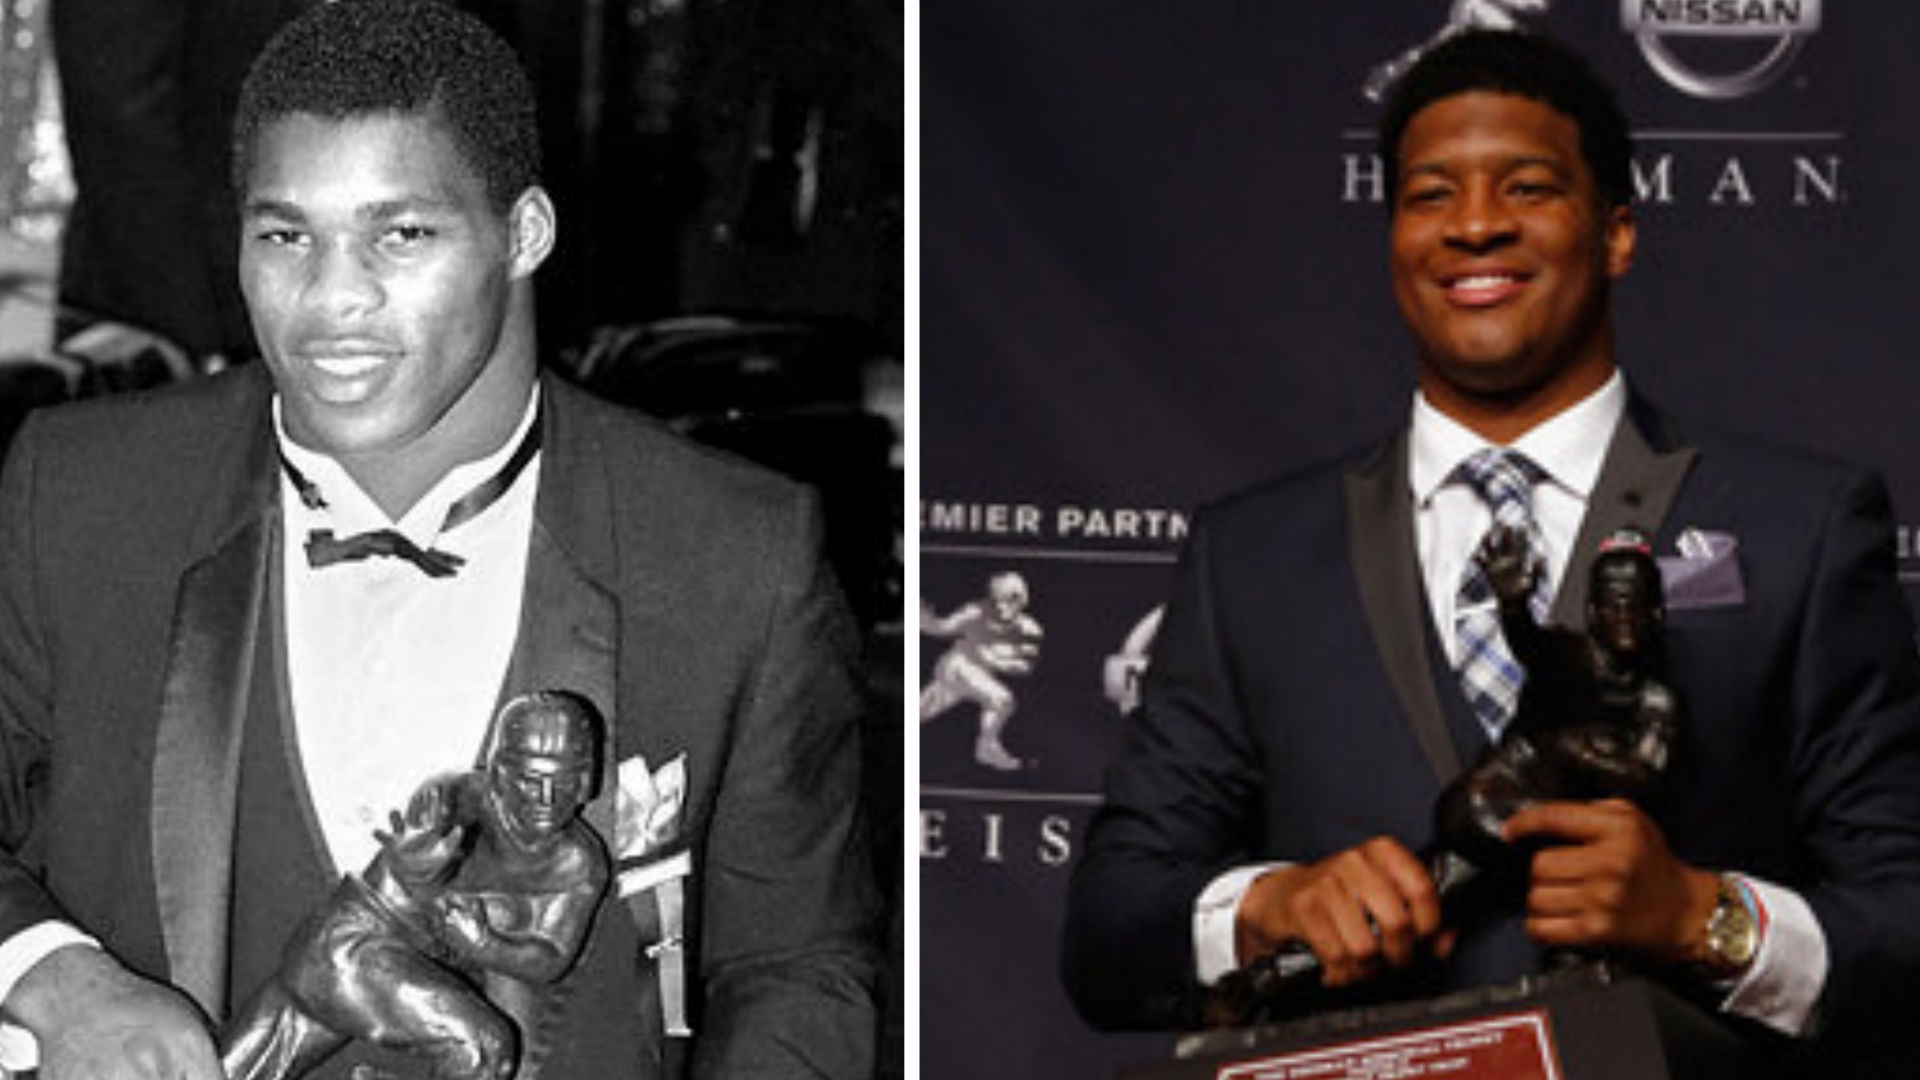 jameis winston heisman house mercial Gallery Image and Wallpaper